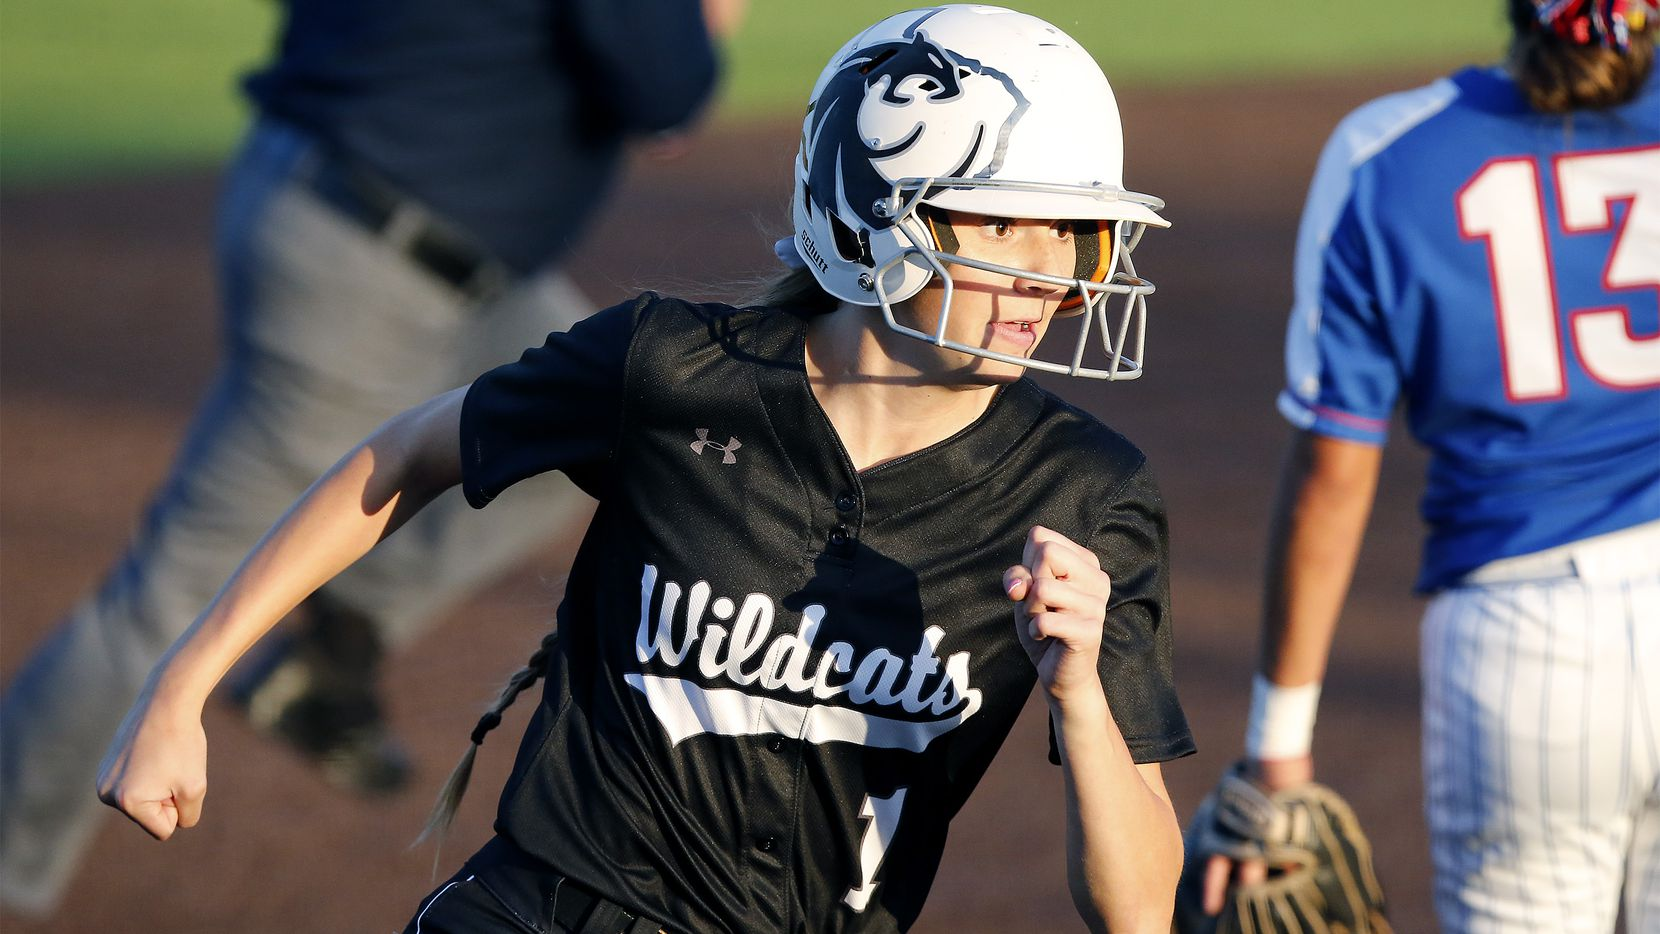 Denton Guyer shortstop Morgan Medford (1) rounds third base on her way to scoring the game's first run in the first inning as Duncanville High School played Denton Guyer High School in a one game area-round playoff softball game held at Carroll High School in Southlake on Friday, May 4, 2018. (Stewart F. House/Special Contributor)